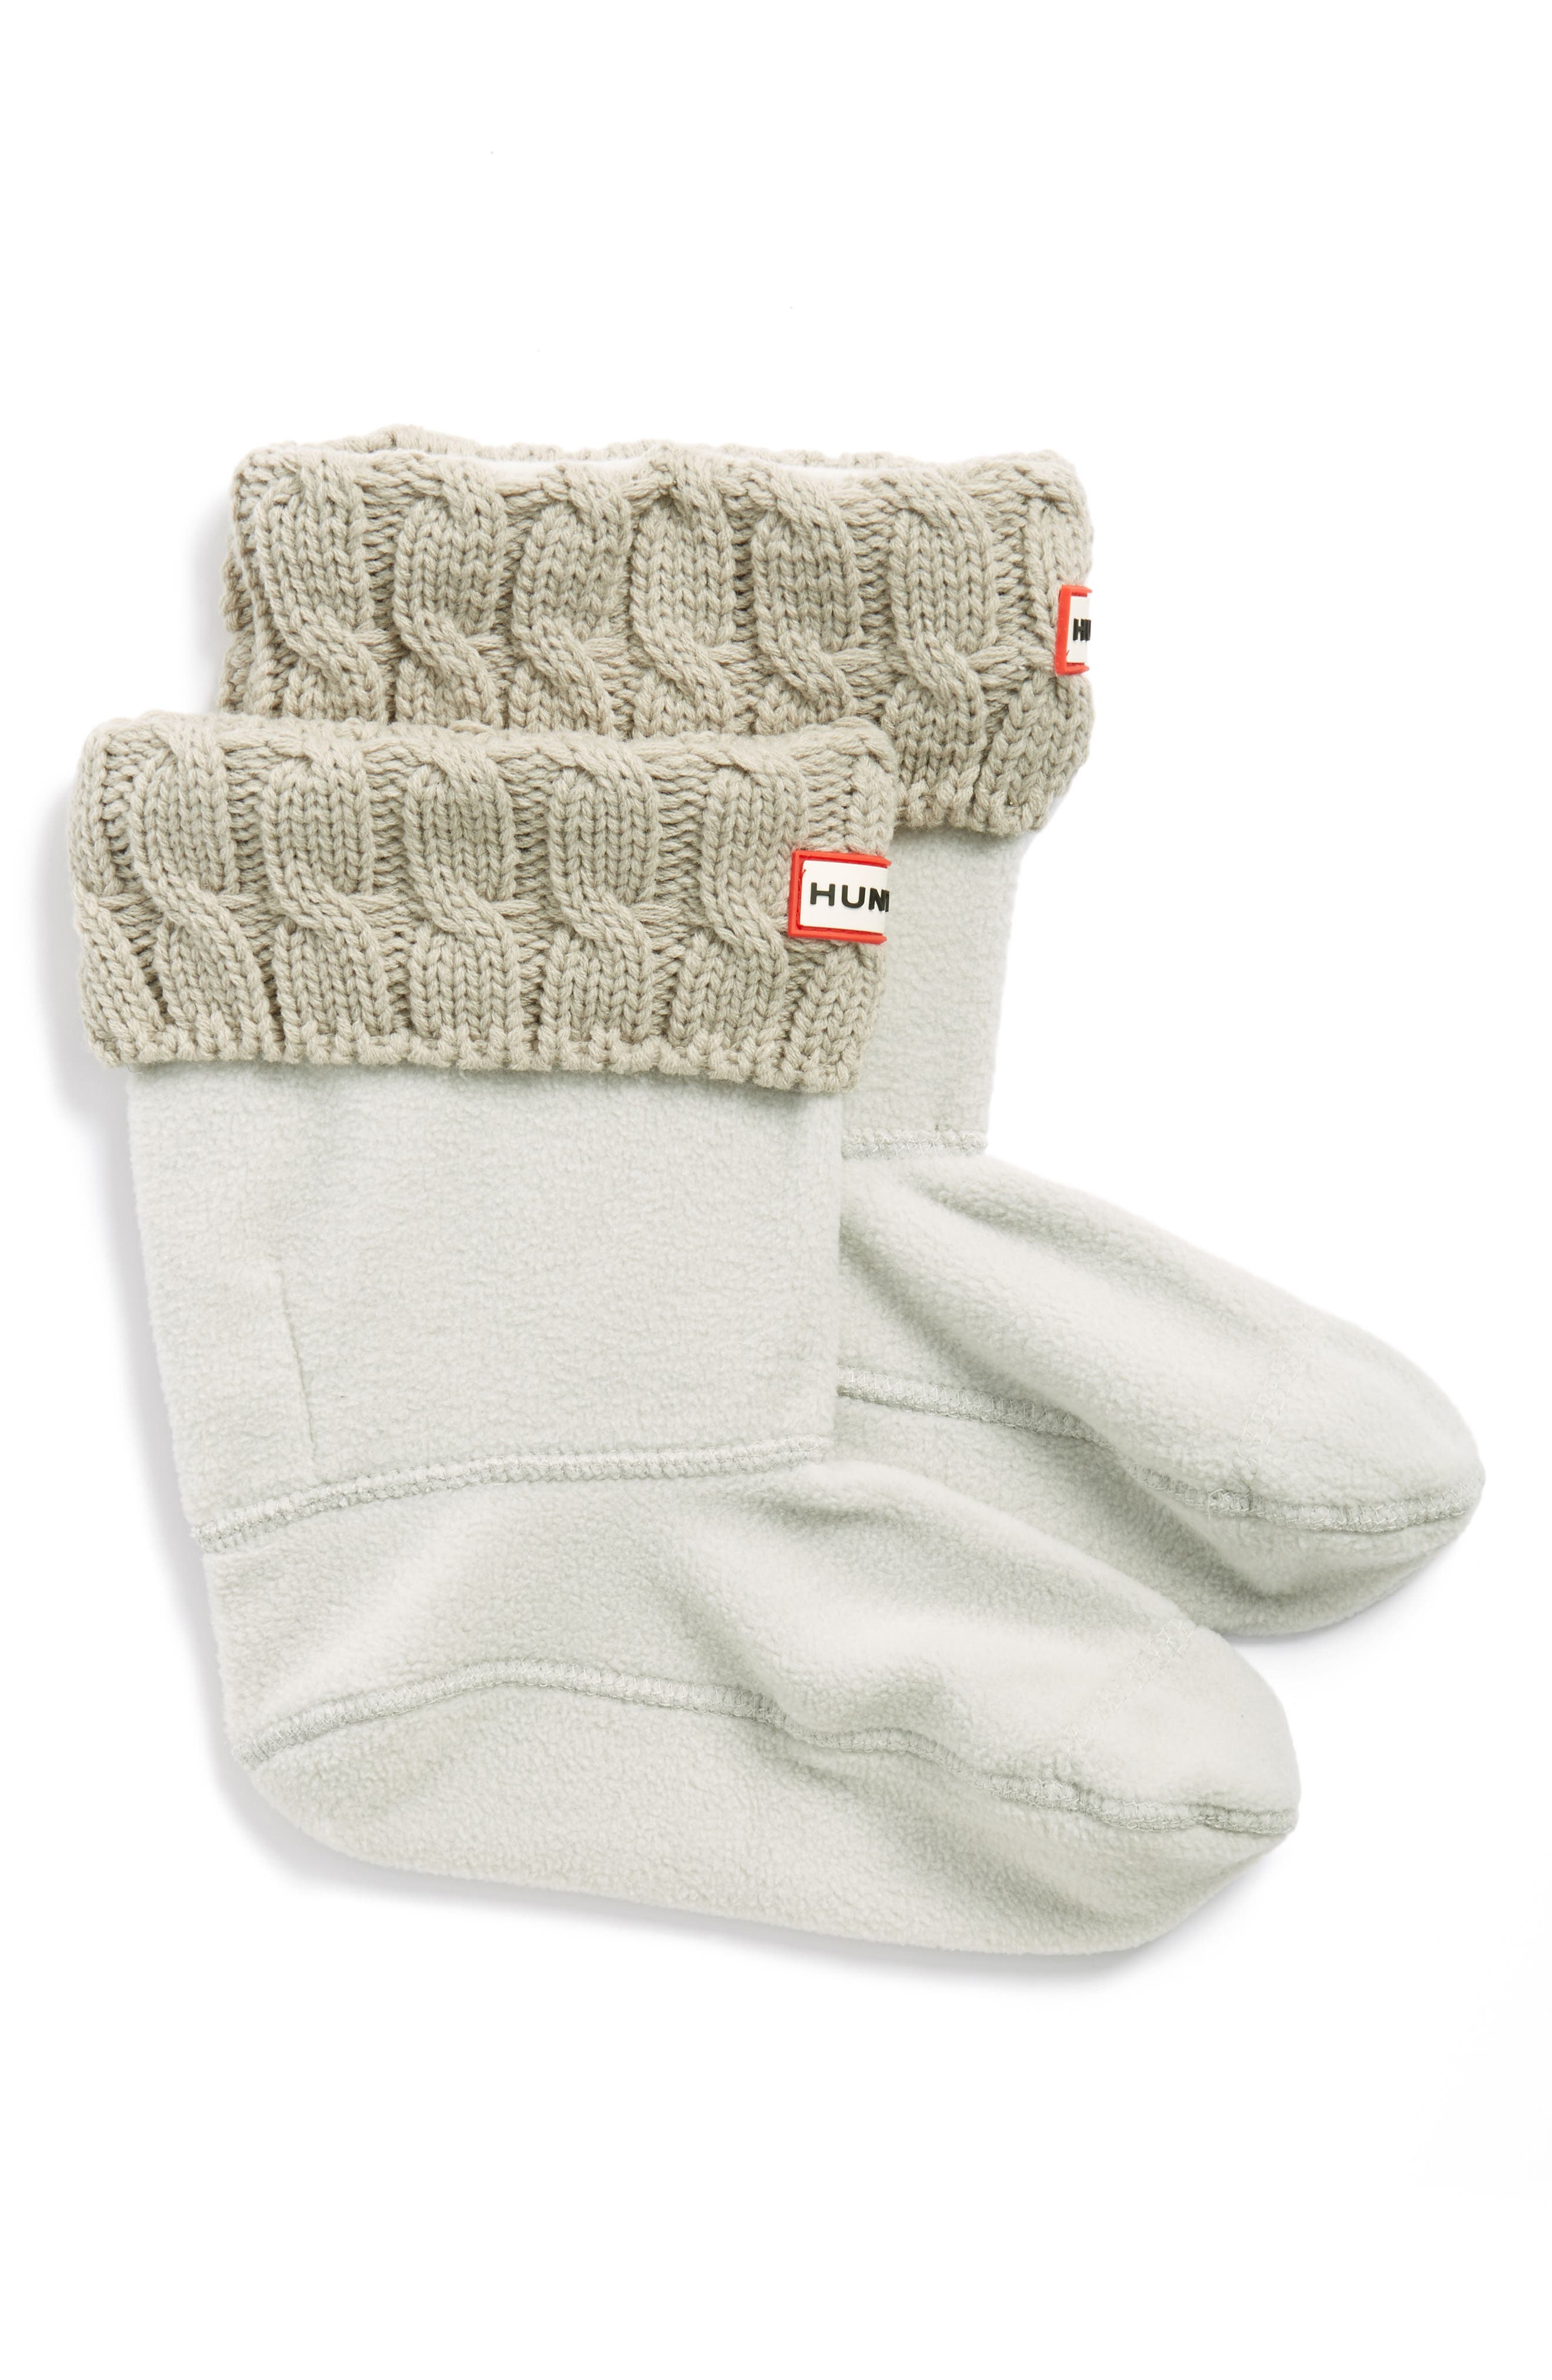 Original Short Cable Knit Cuff Welly Boot Socks,                             Alternate thumbnail 2, color,                             GREIGE